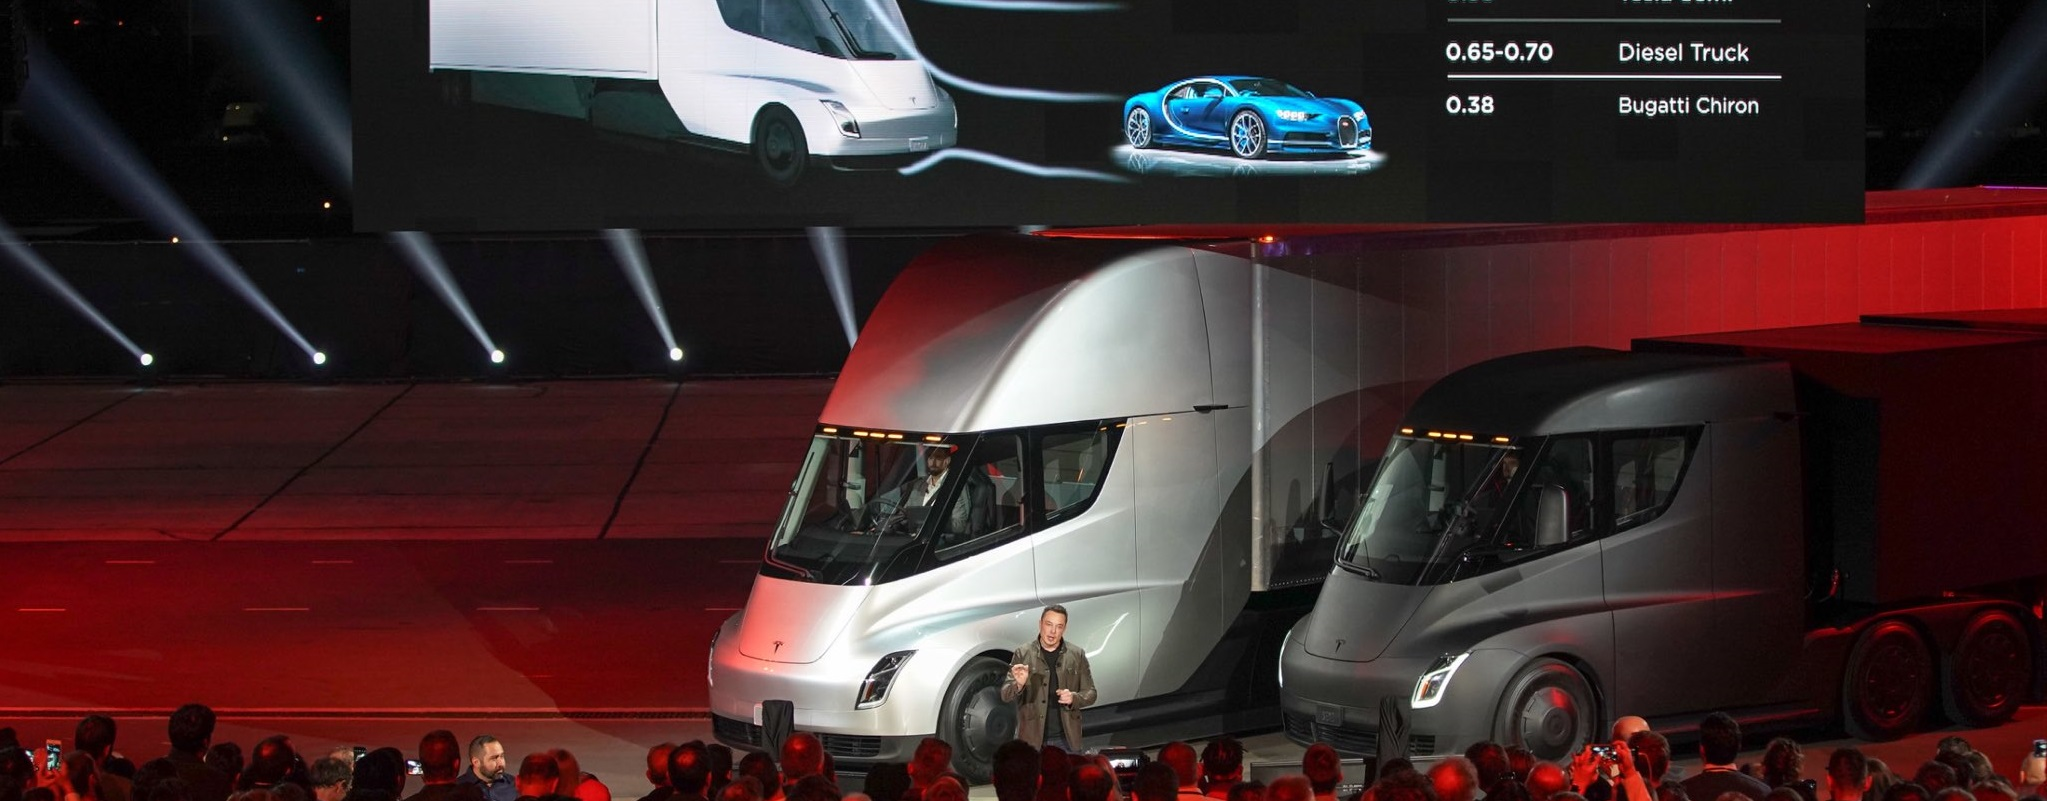 tesla d voile un semi remorque et son nouveau roadster newsgeek. Black Bedroom Furniture Sets. Home Design Ideas